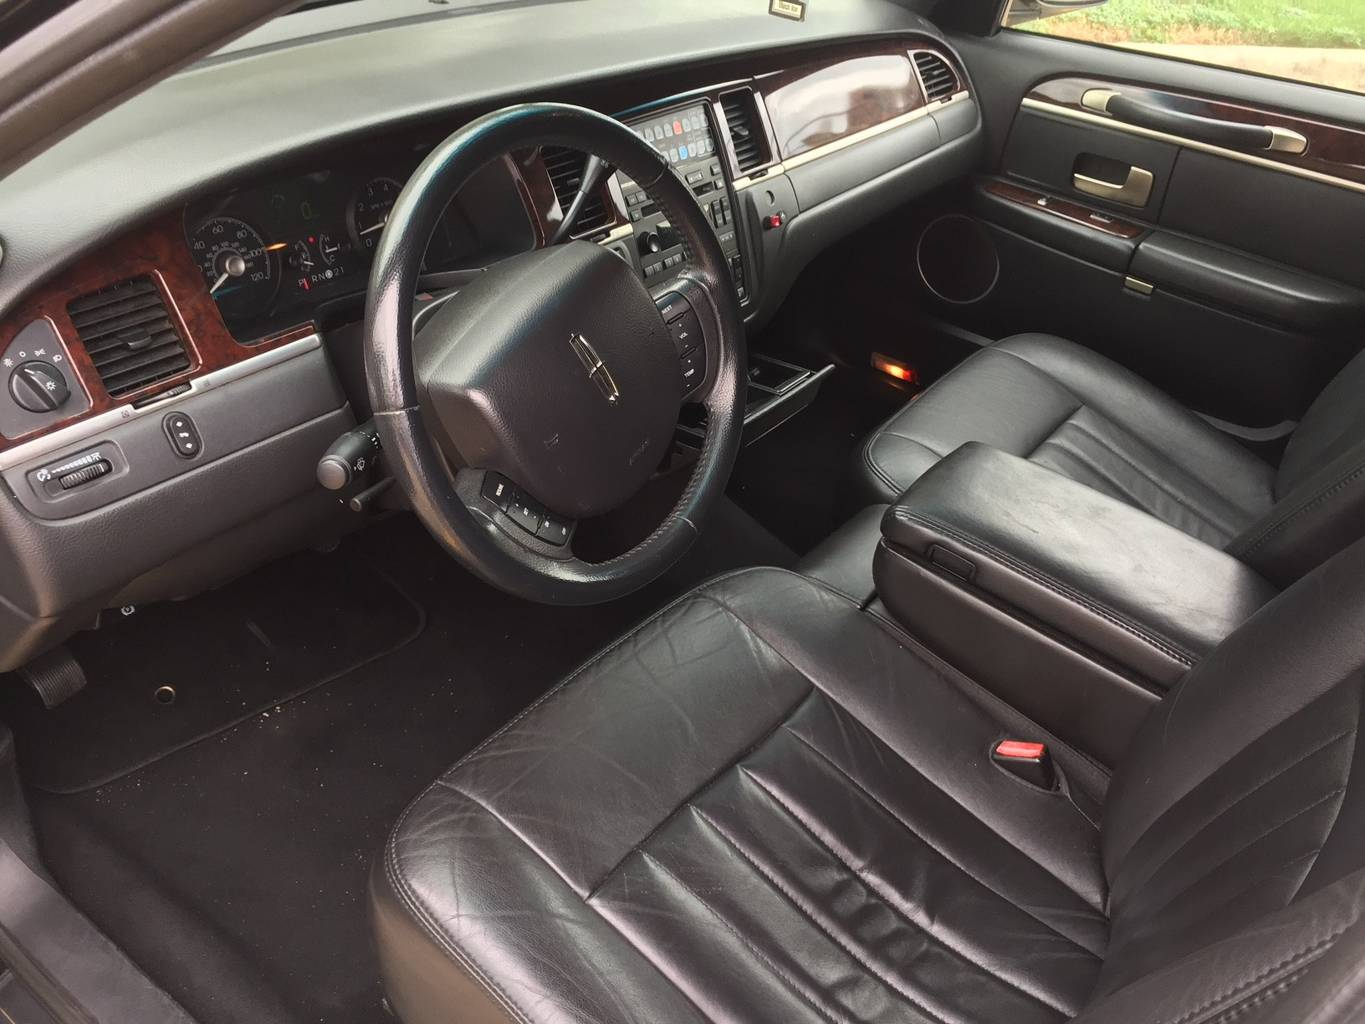 7th Image of a 2007 LINCOLN TOWN CAR EXECUTIVE